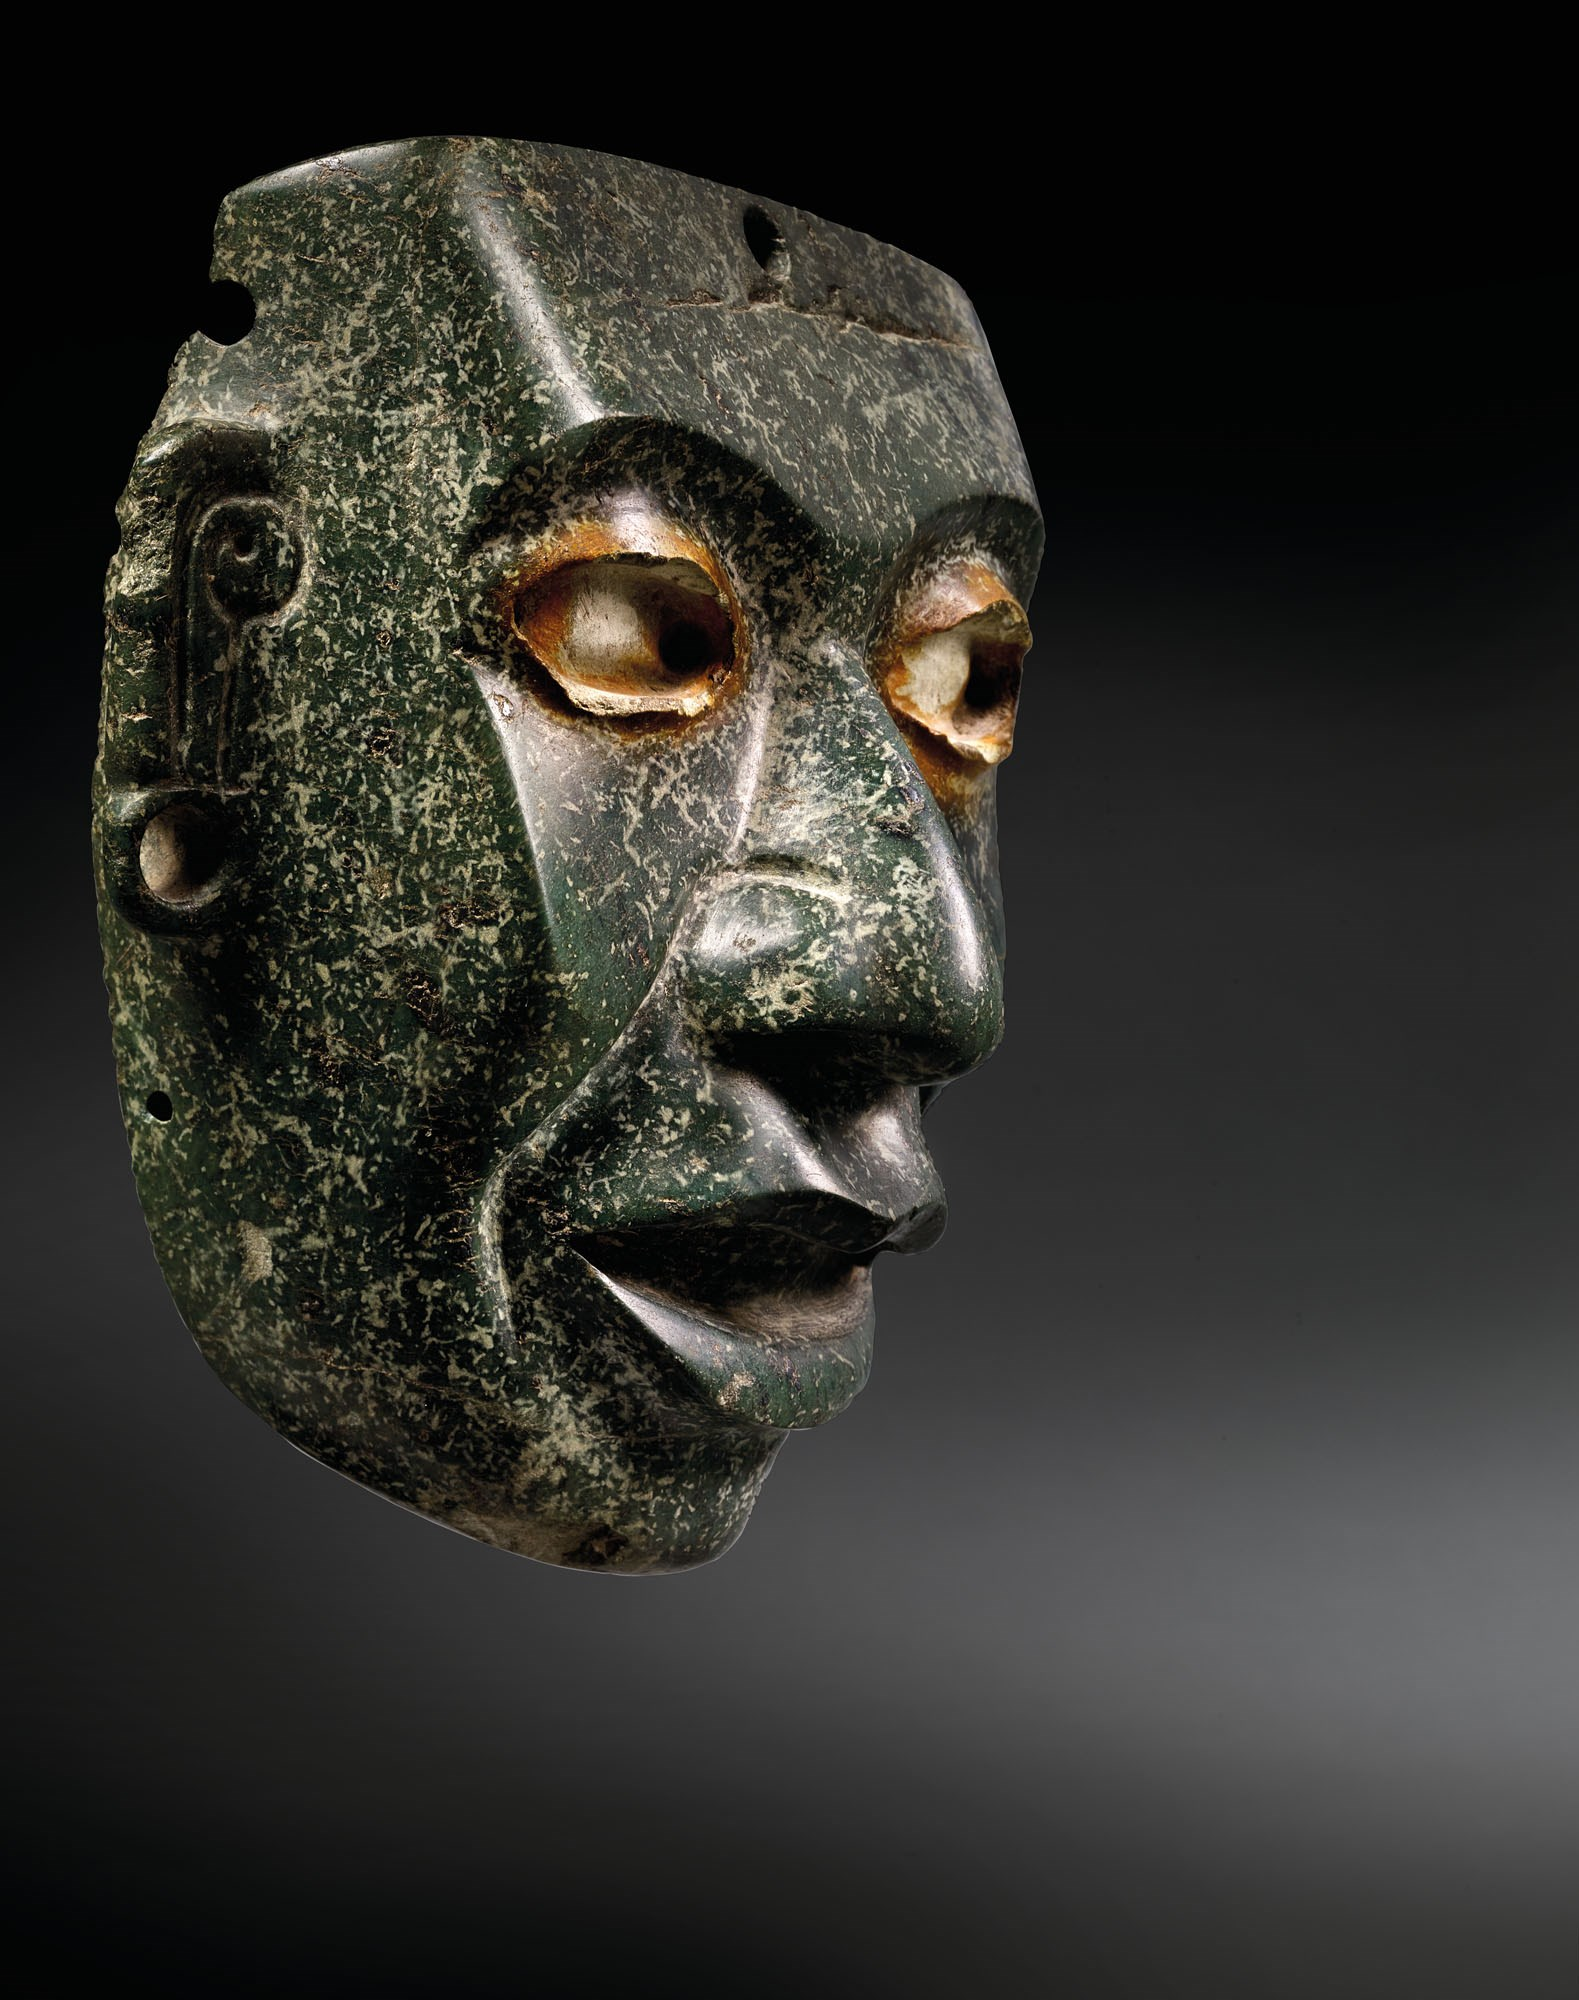 Teotihuacán serpentine mask, circa 450-650 AD. Estimate €350,000-550,000. Offered in Quetzalcoatl serpent à plumes on 9 February 2021 at Christie's in Paris